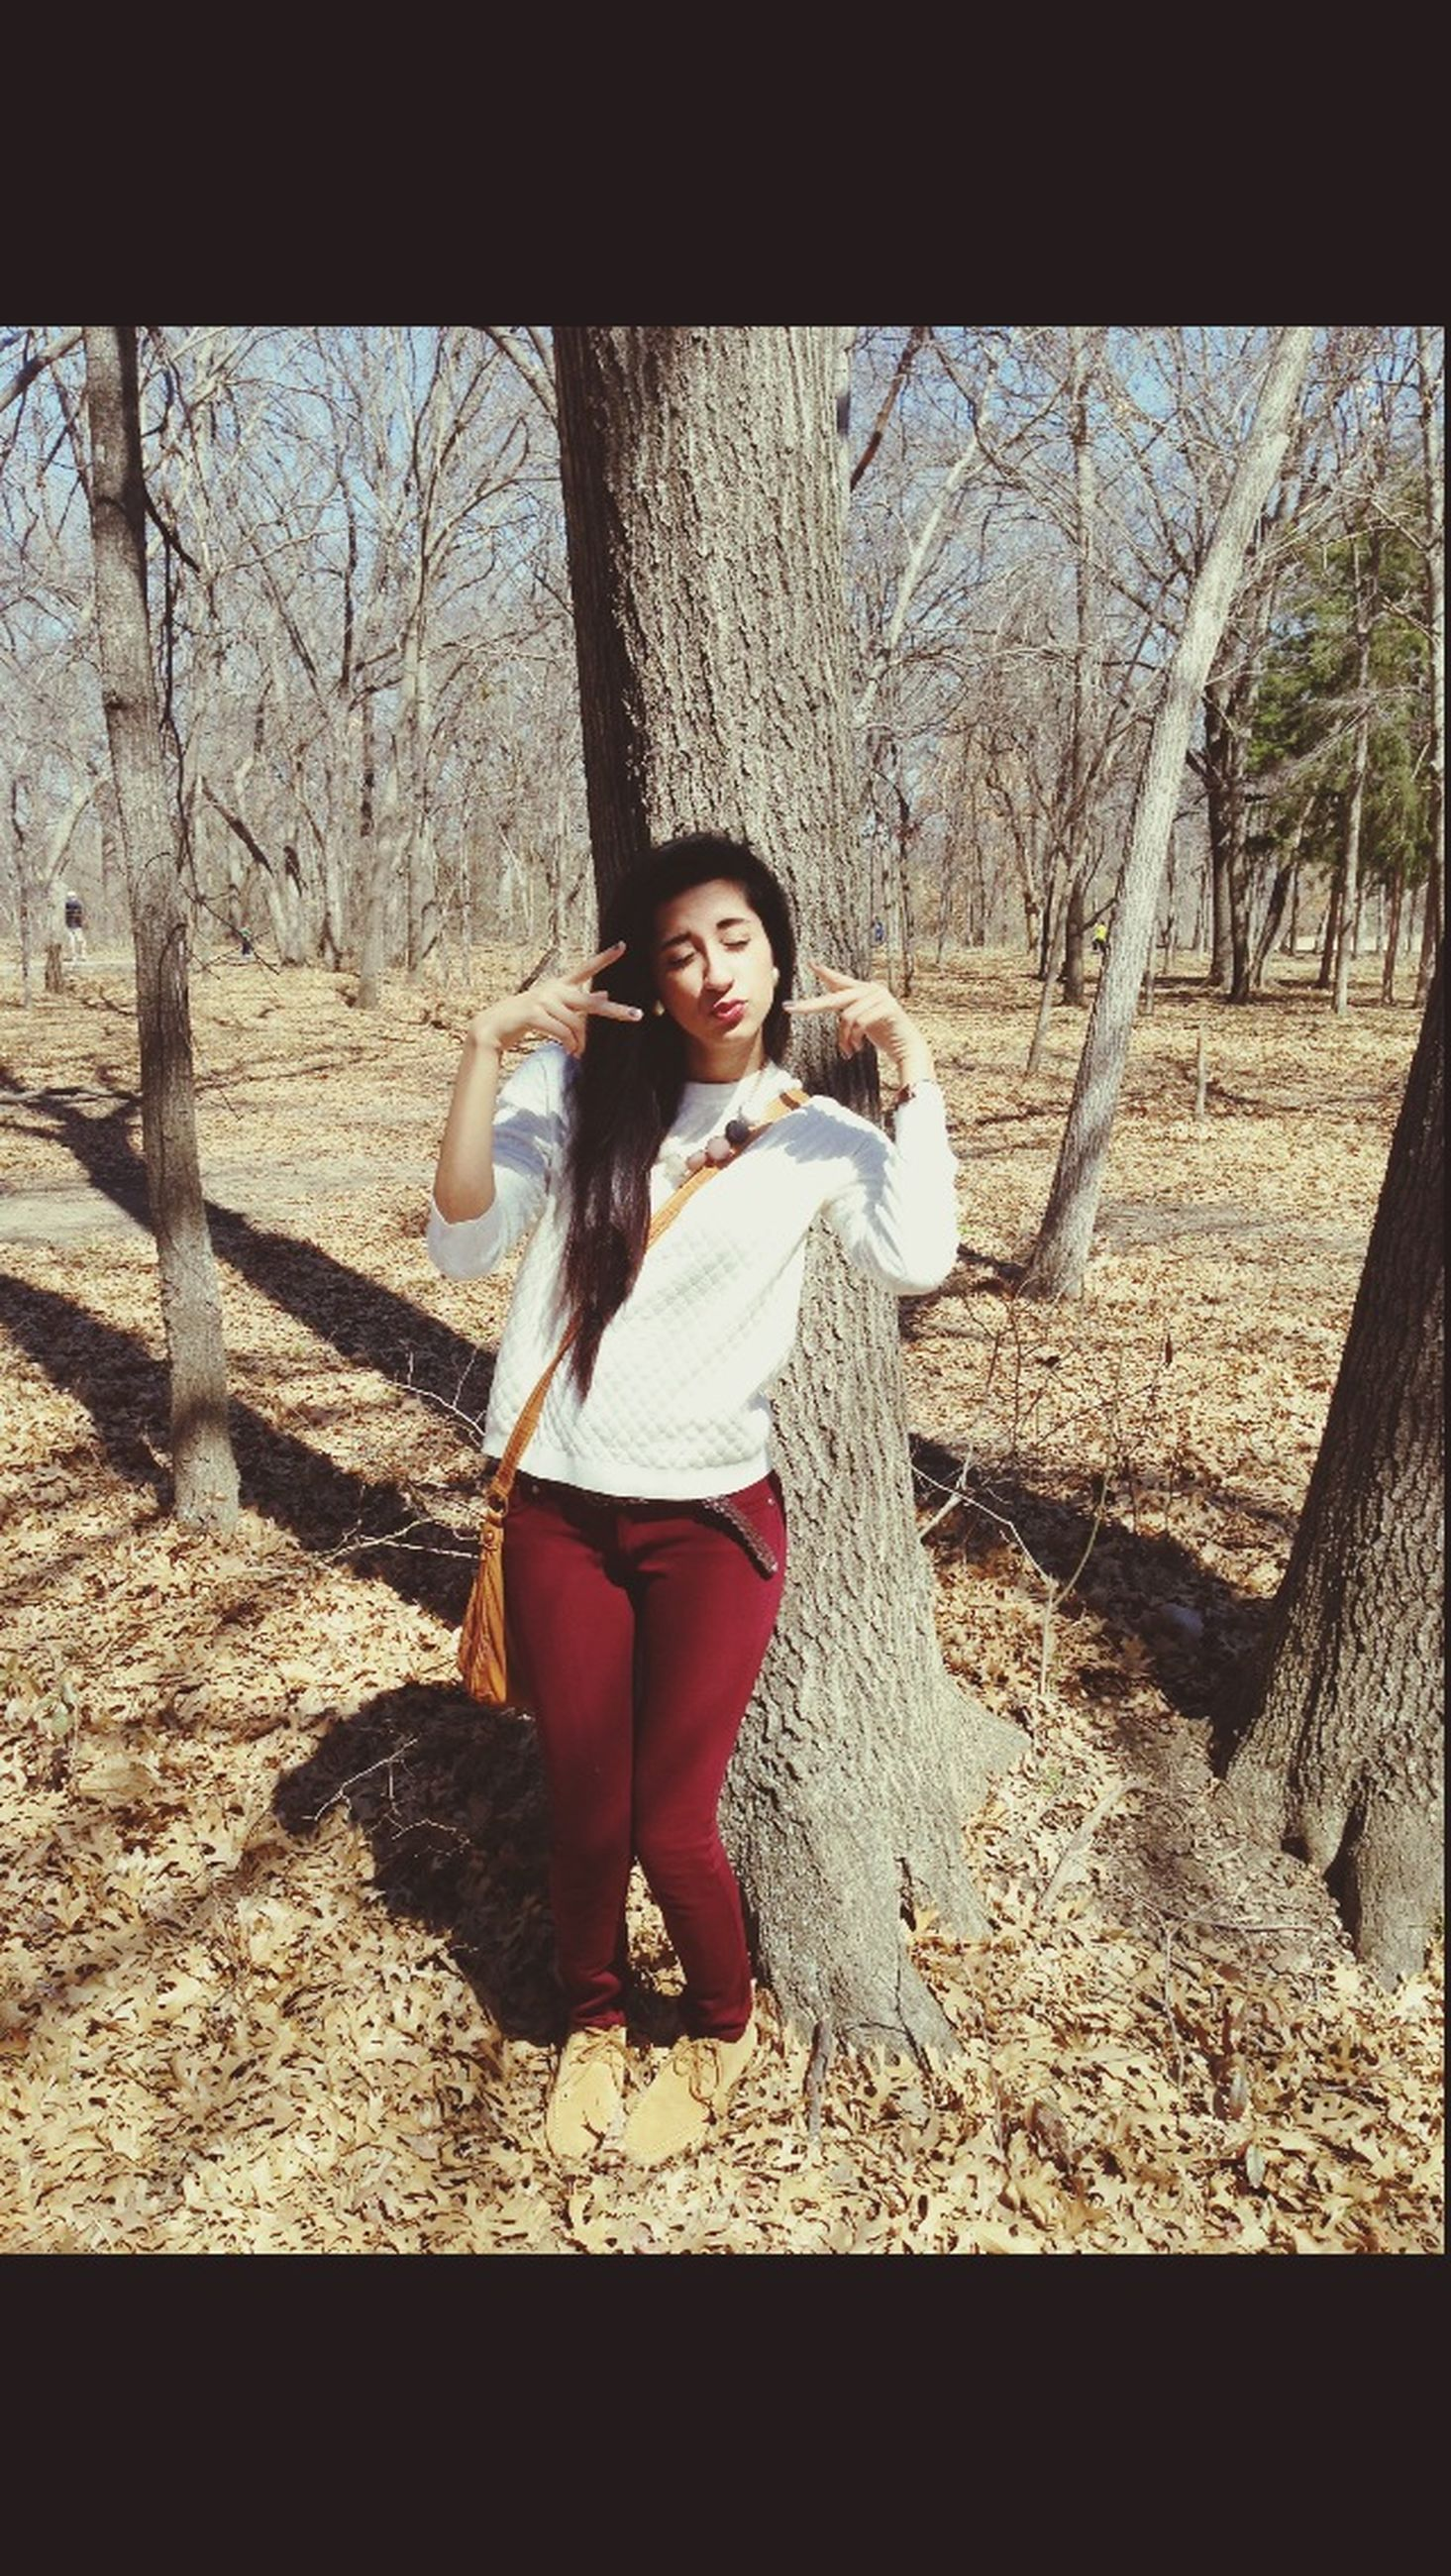 person, looking at camera, portrait, full length, casual clothing, tree, lifestyles, leisure activity, young adult, front view, smiling, childhood, happiness, young women, elementary age, sitting, standing, tree trunk